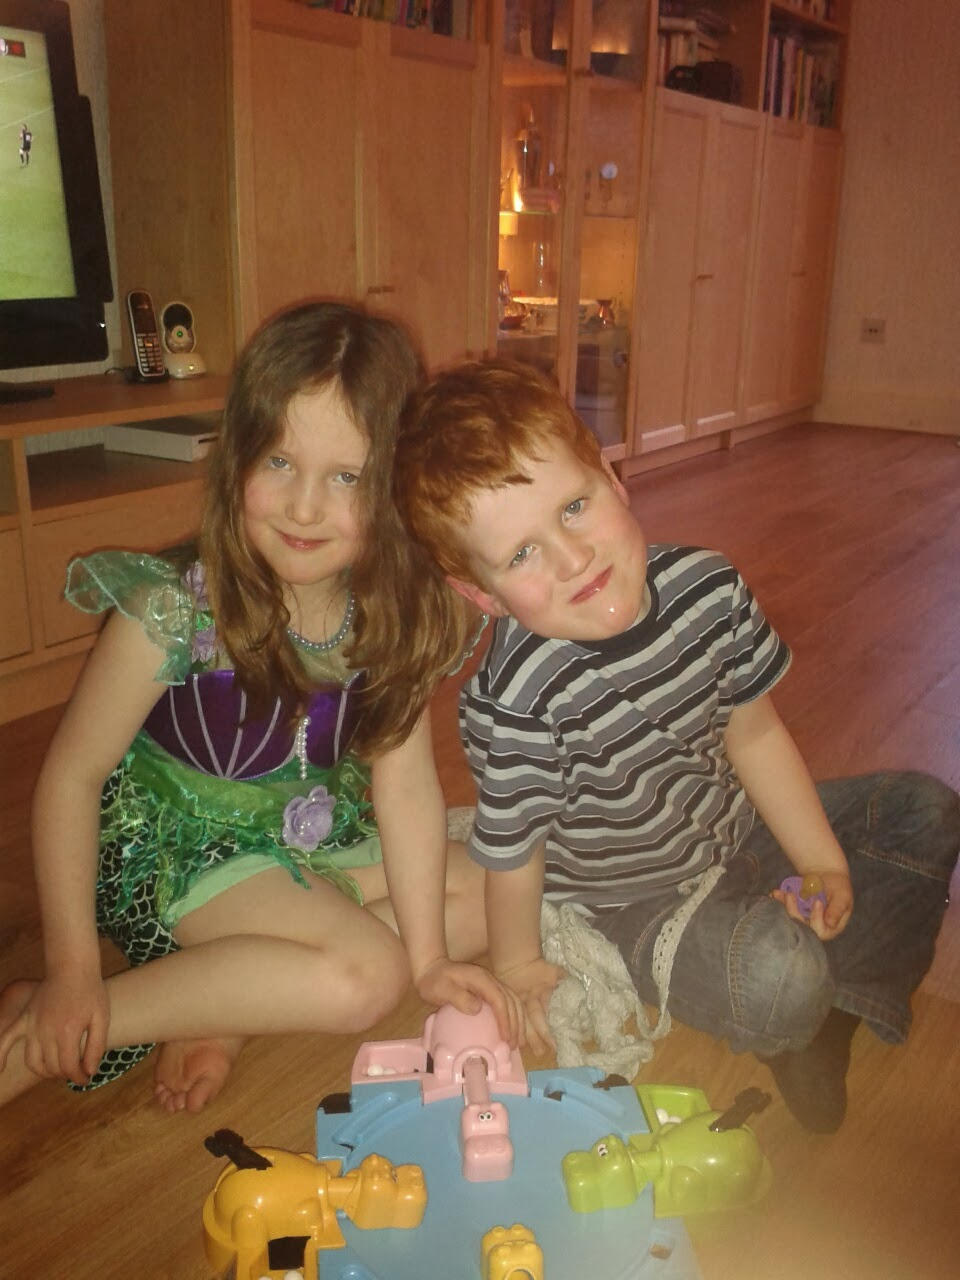 Caitlin and Ieuan playing Hungry Hippos game